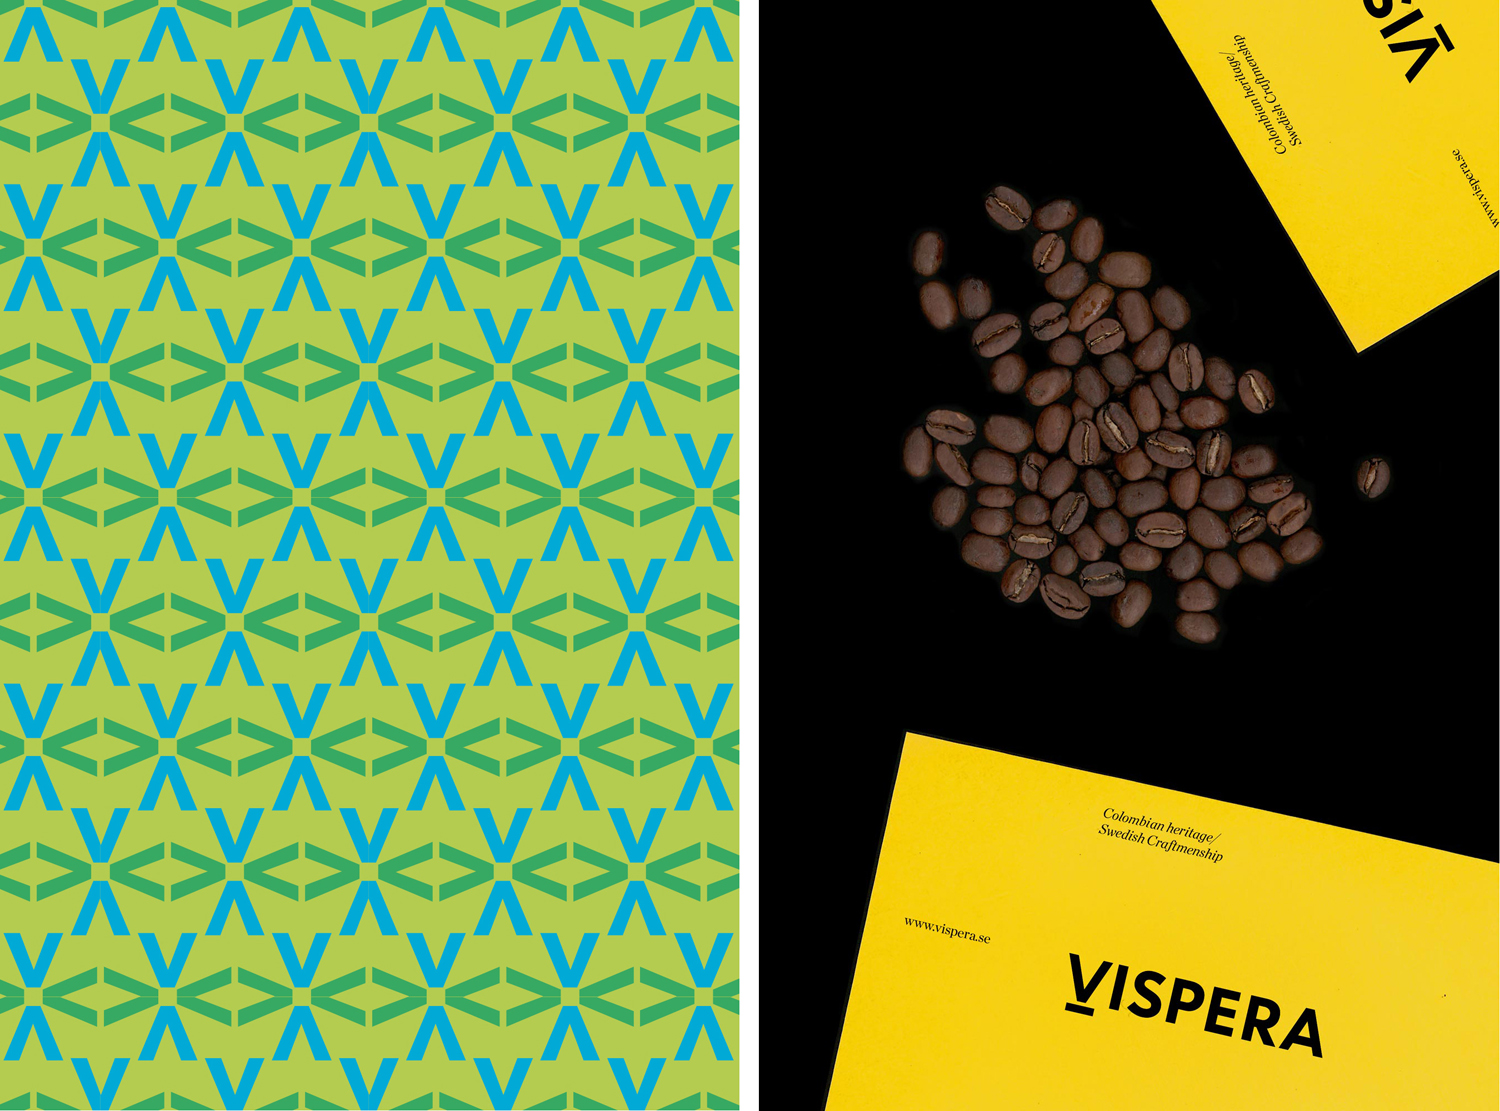 Pattern and print created by Stockholm Design Lab for Víspera Coffee, a range of 100% Arabica beans sourced from the high altitude plantations of Columbia.